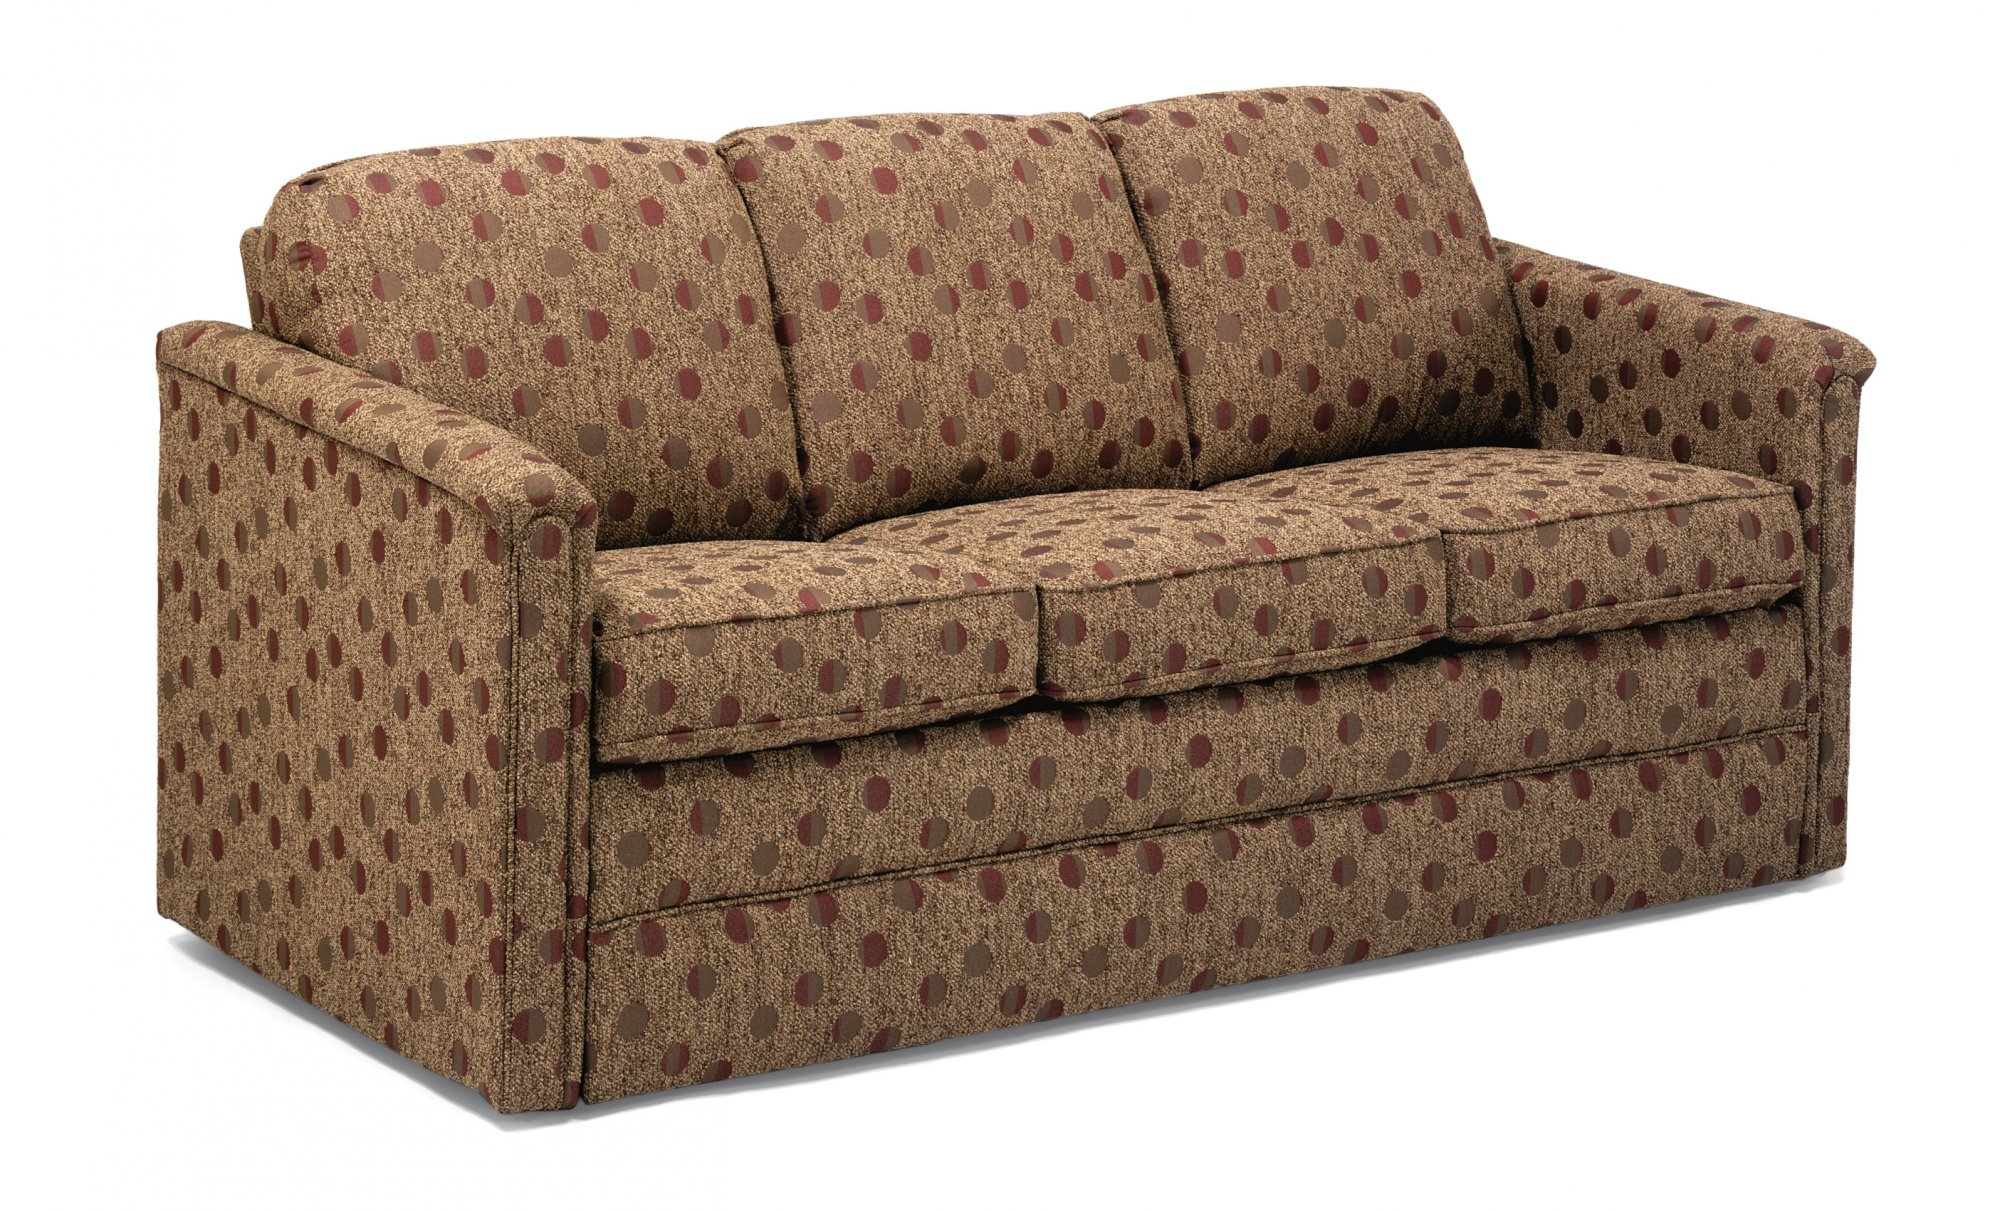 RV Sofas RV Couch